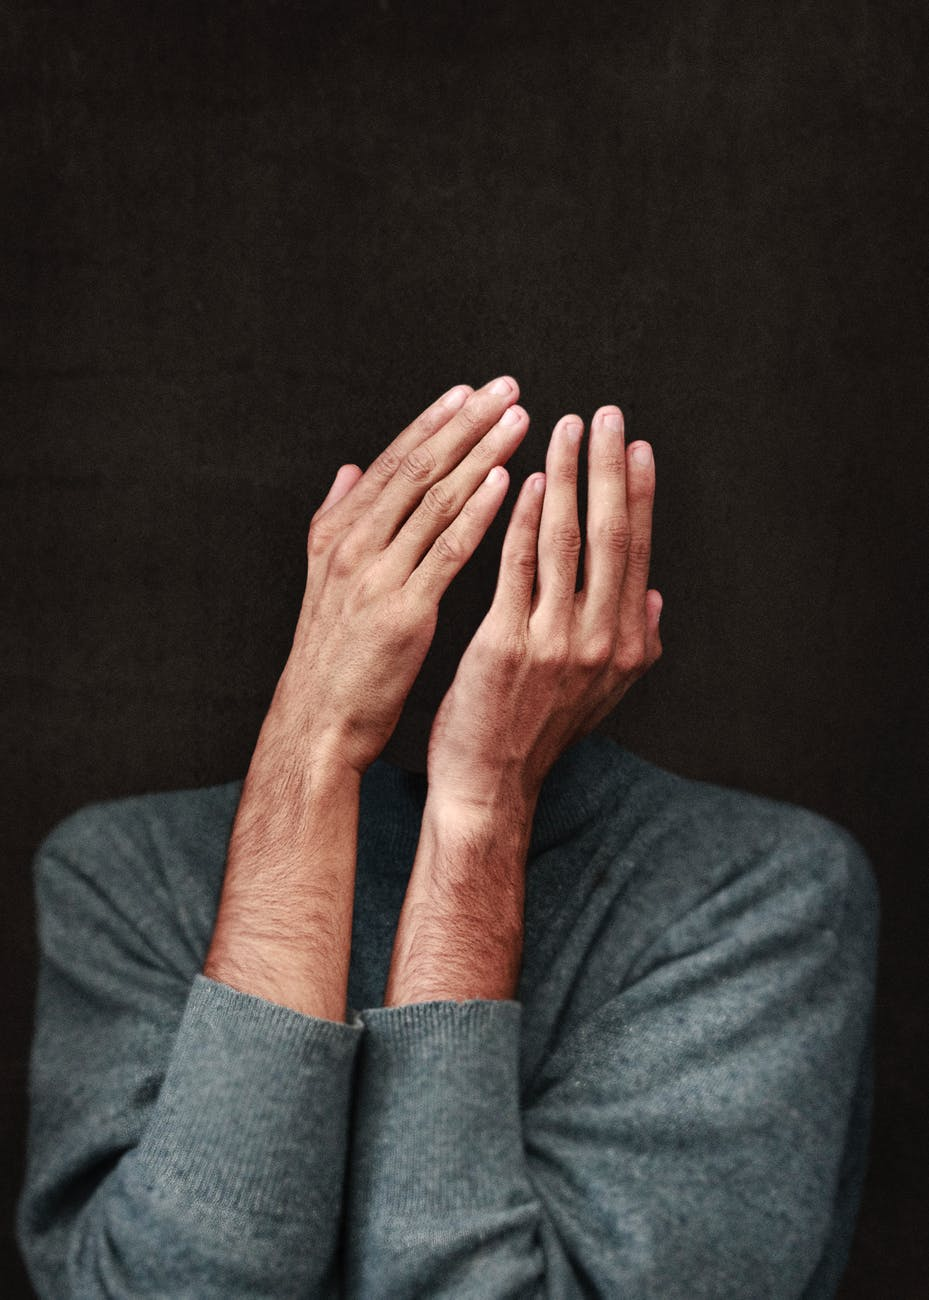 person in gray sweater cover face